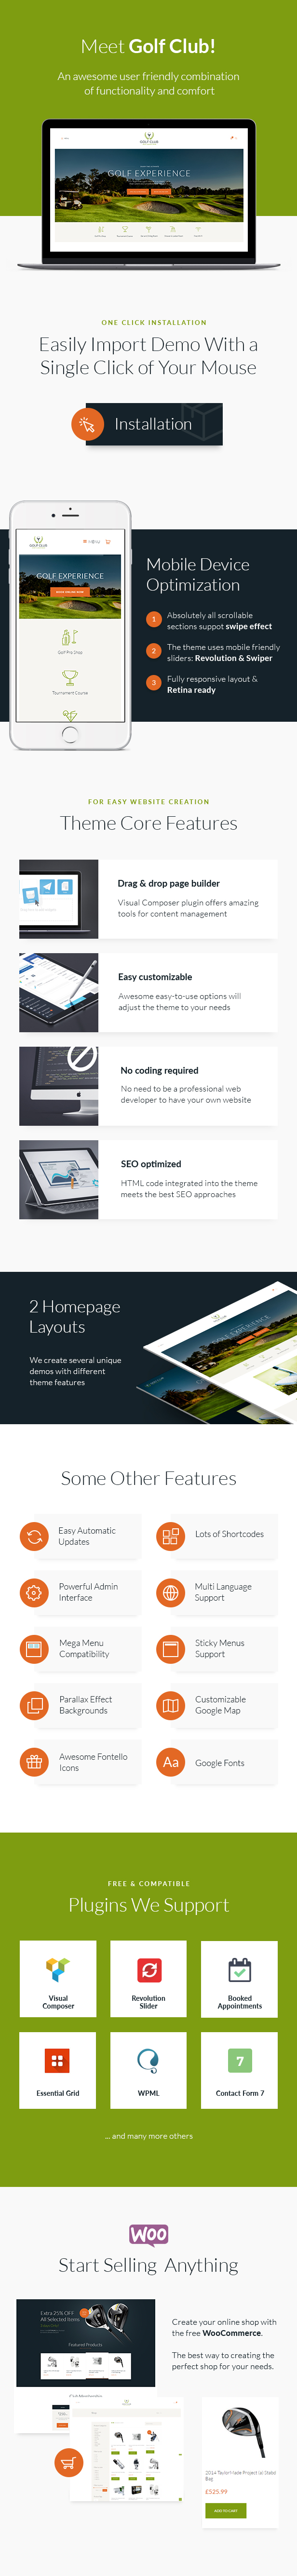 Golf Club - Sports & Events WordPress Theme features